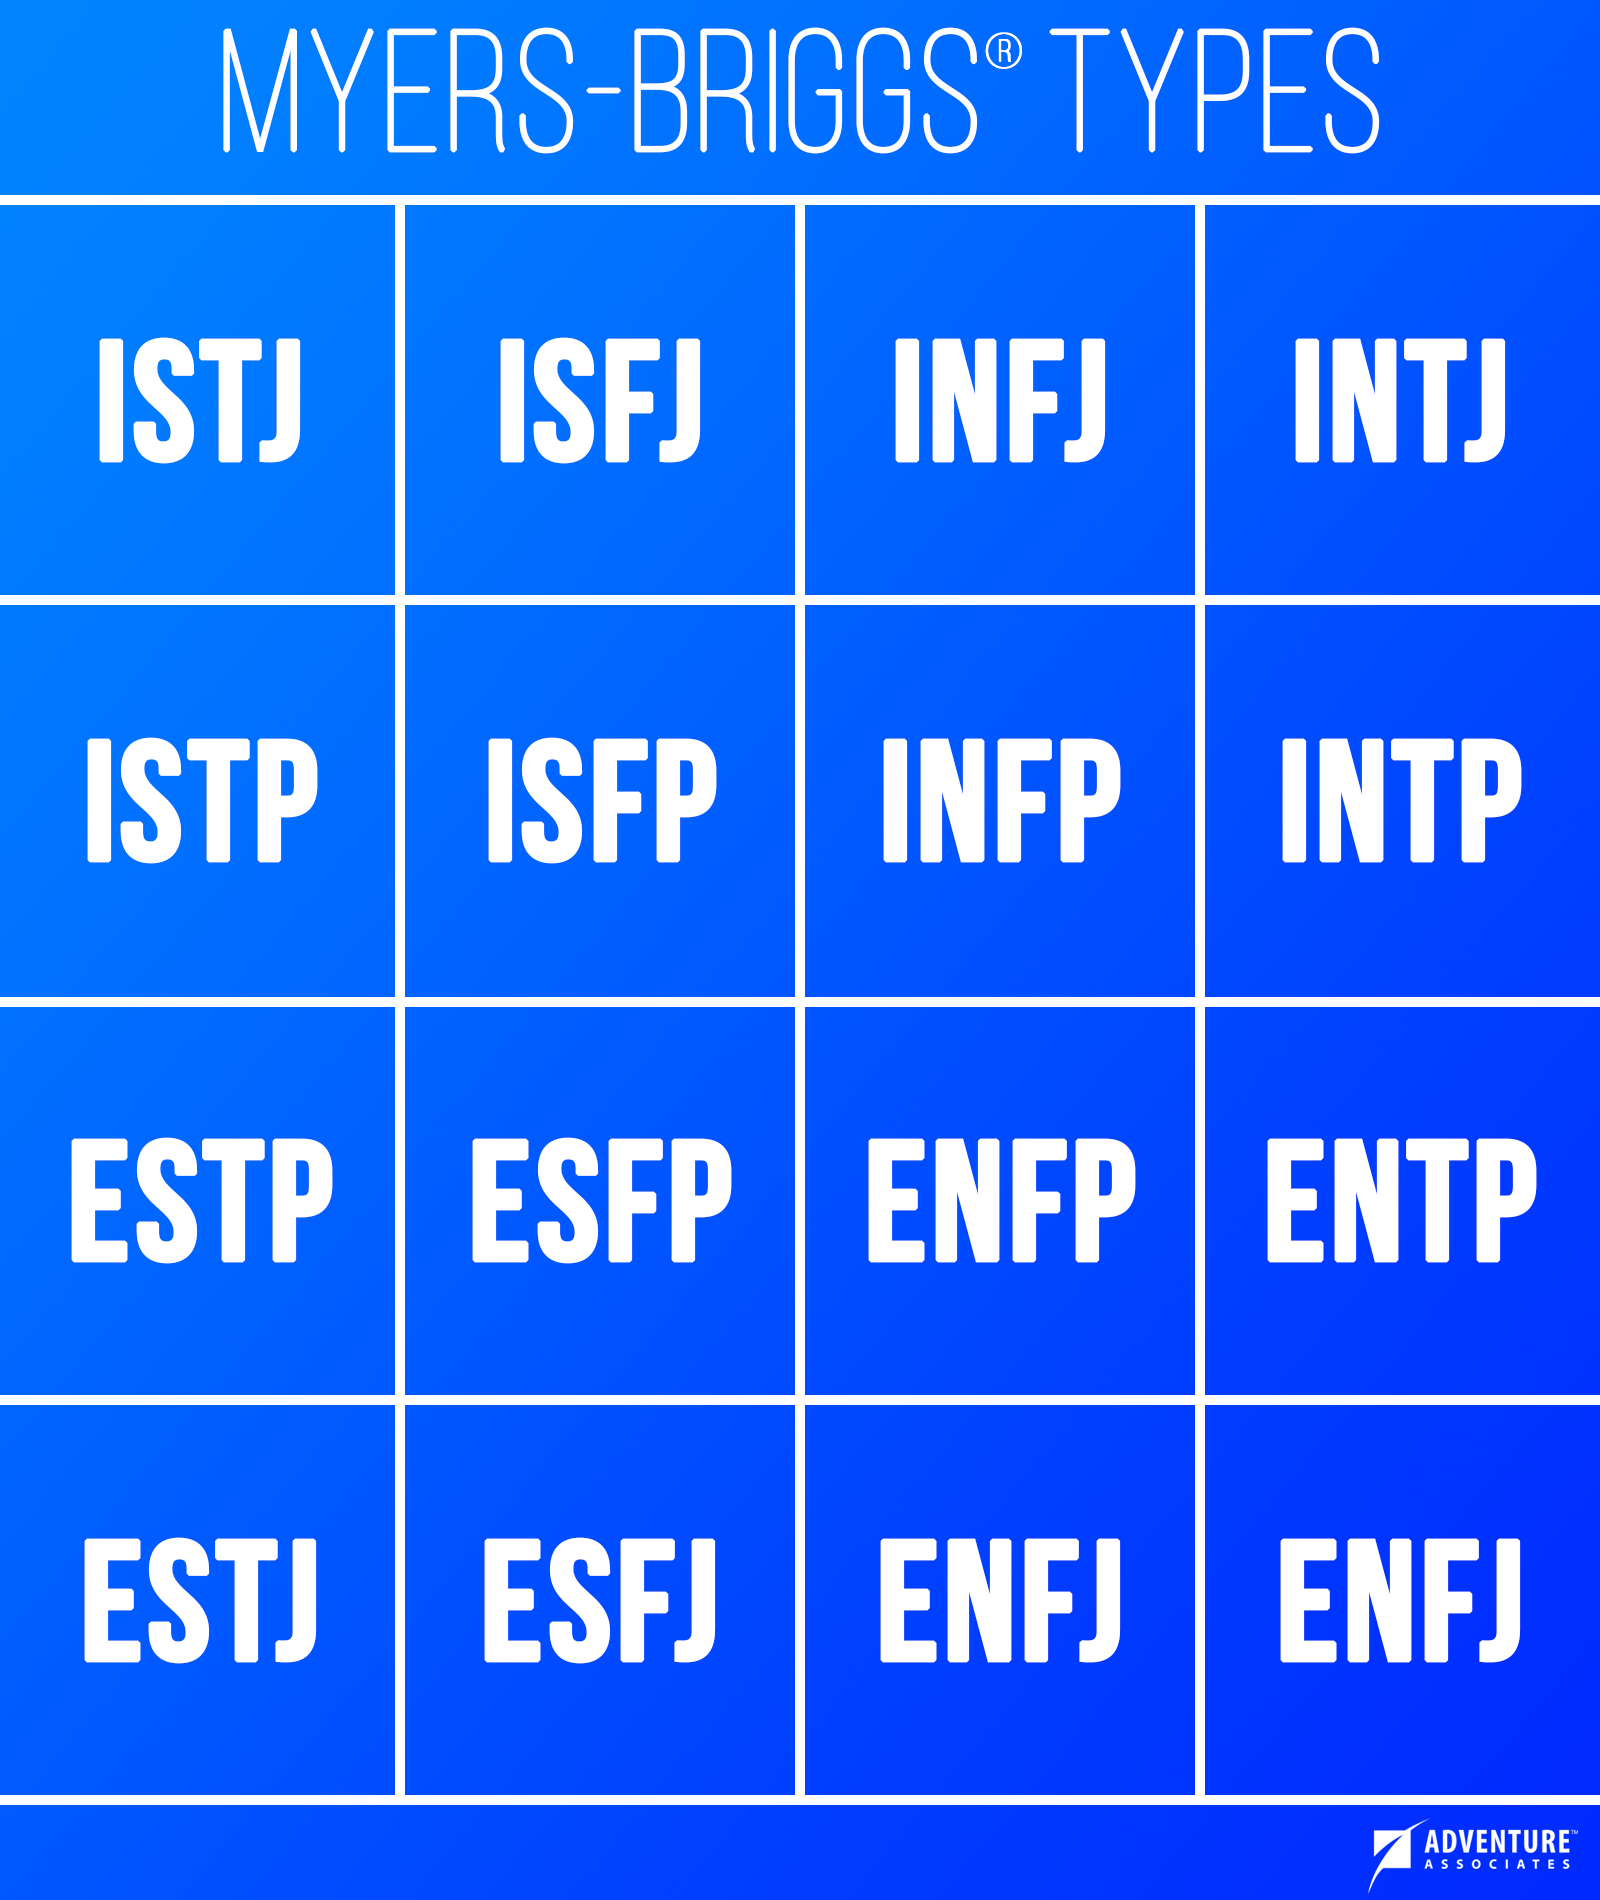 15+ Myers Briggs Personality Type Charts of Fictional Characters